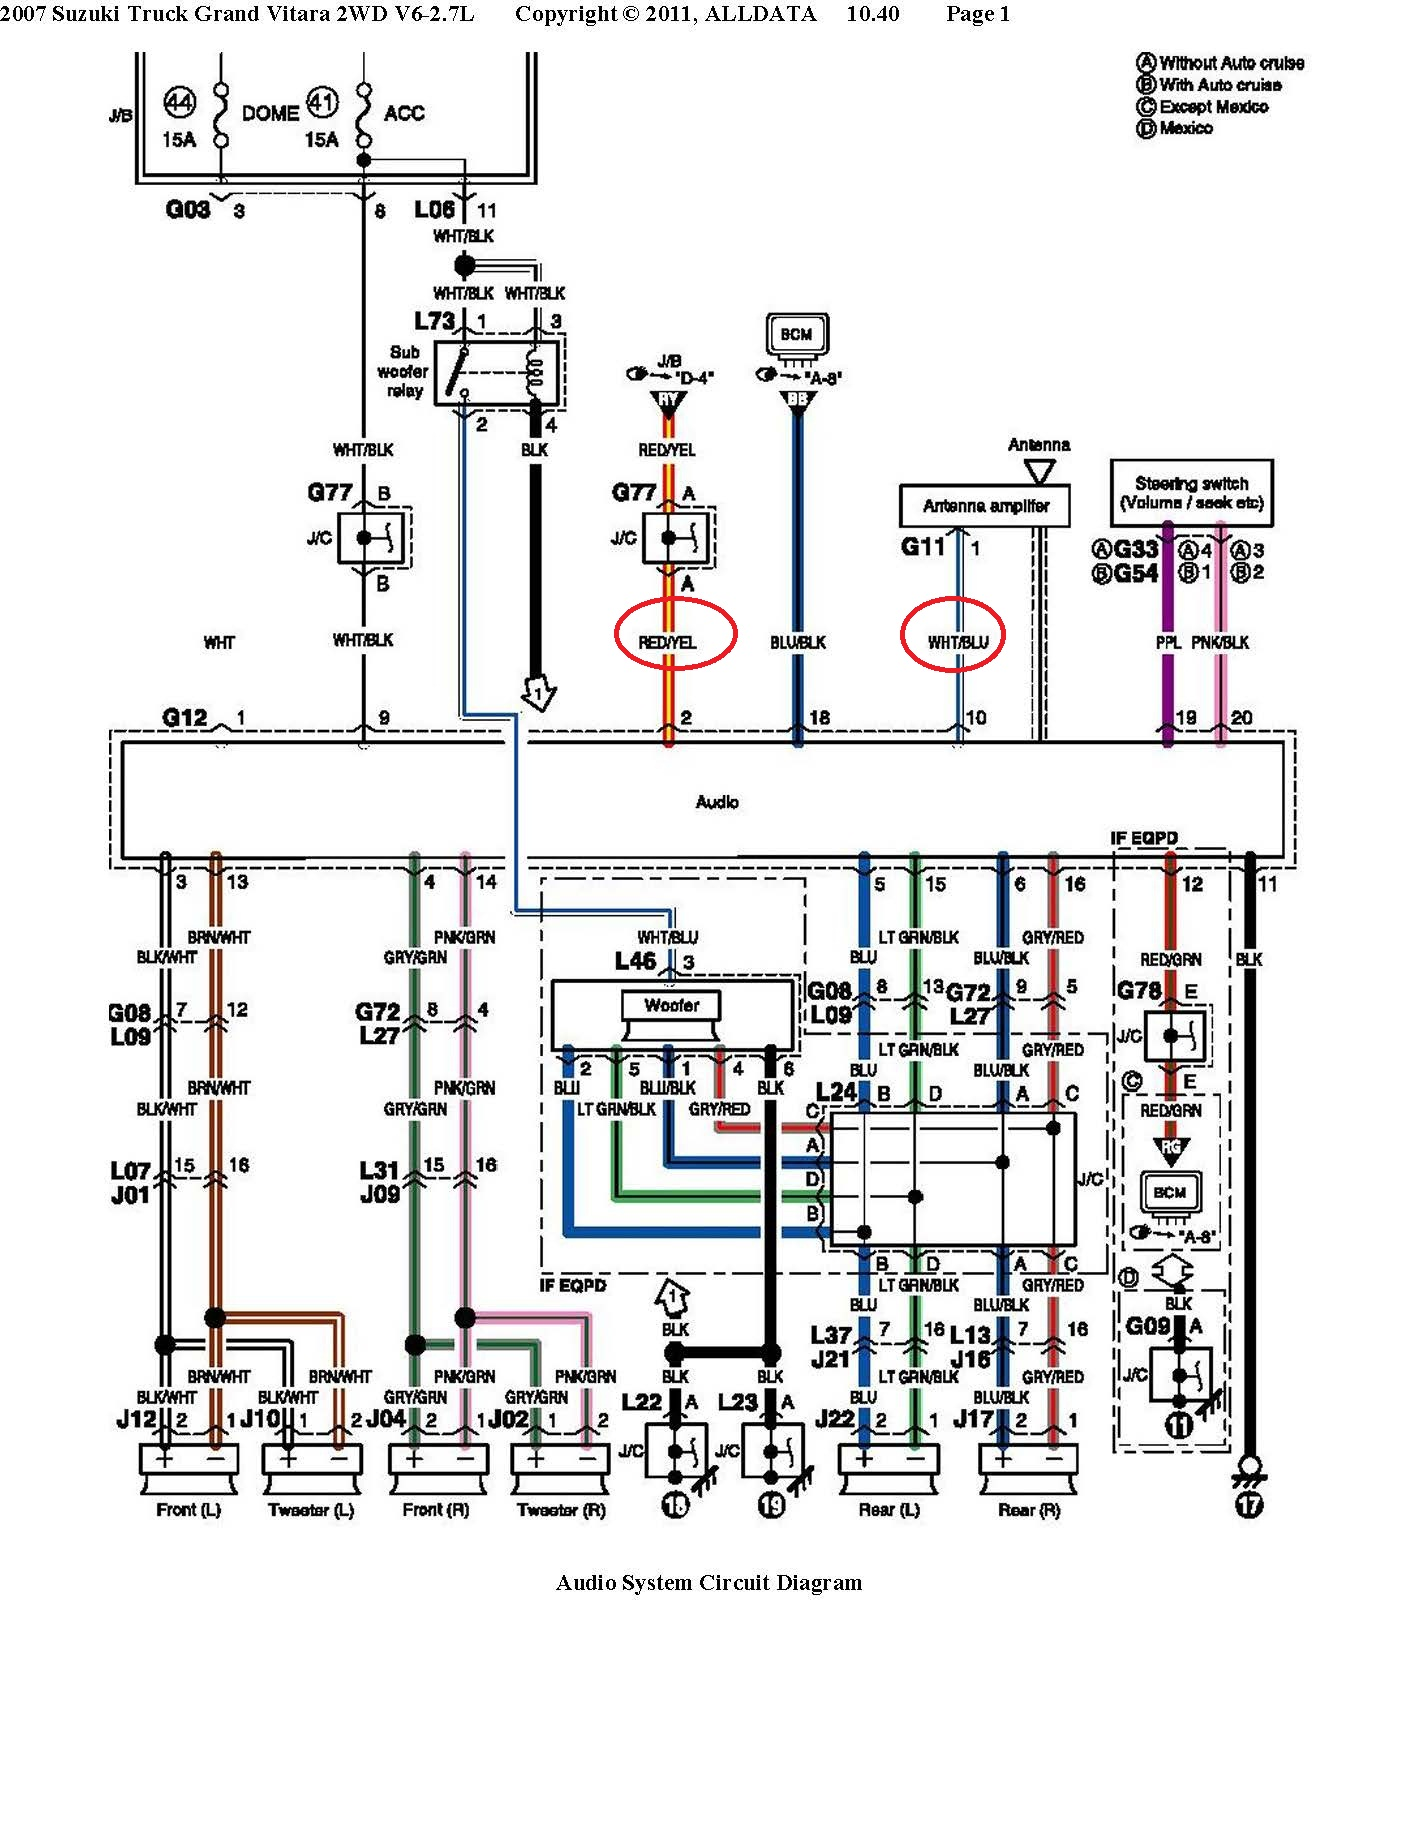 2005 Suzuki Xl7 Radio Wiring Diagram Posts 2002 Mitsubishi Galant Car Stereo Audio Autoradio Connector Engine